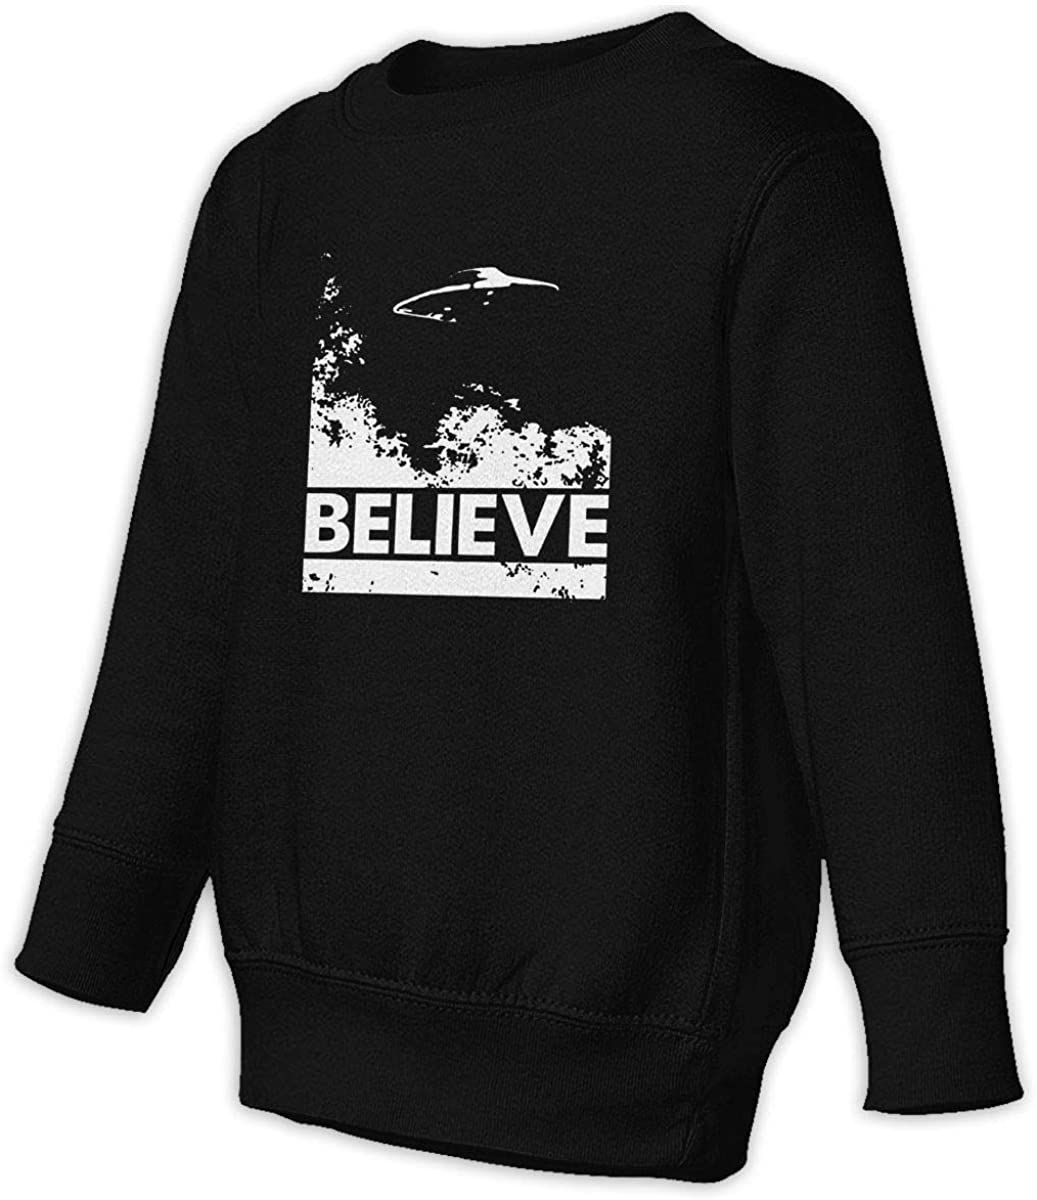 I Want to Believe Alien UFO Boys Girls Pullover Sweaters Crewneck Sweatshirts Clothes for 2-6 Years Old Children